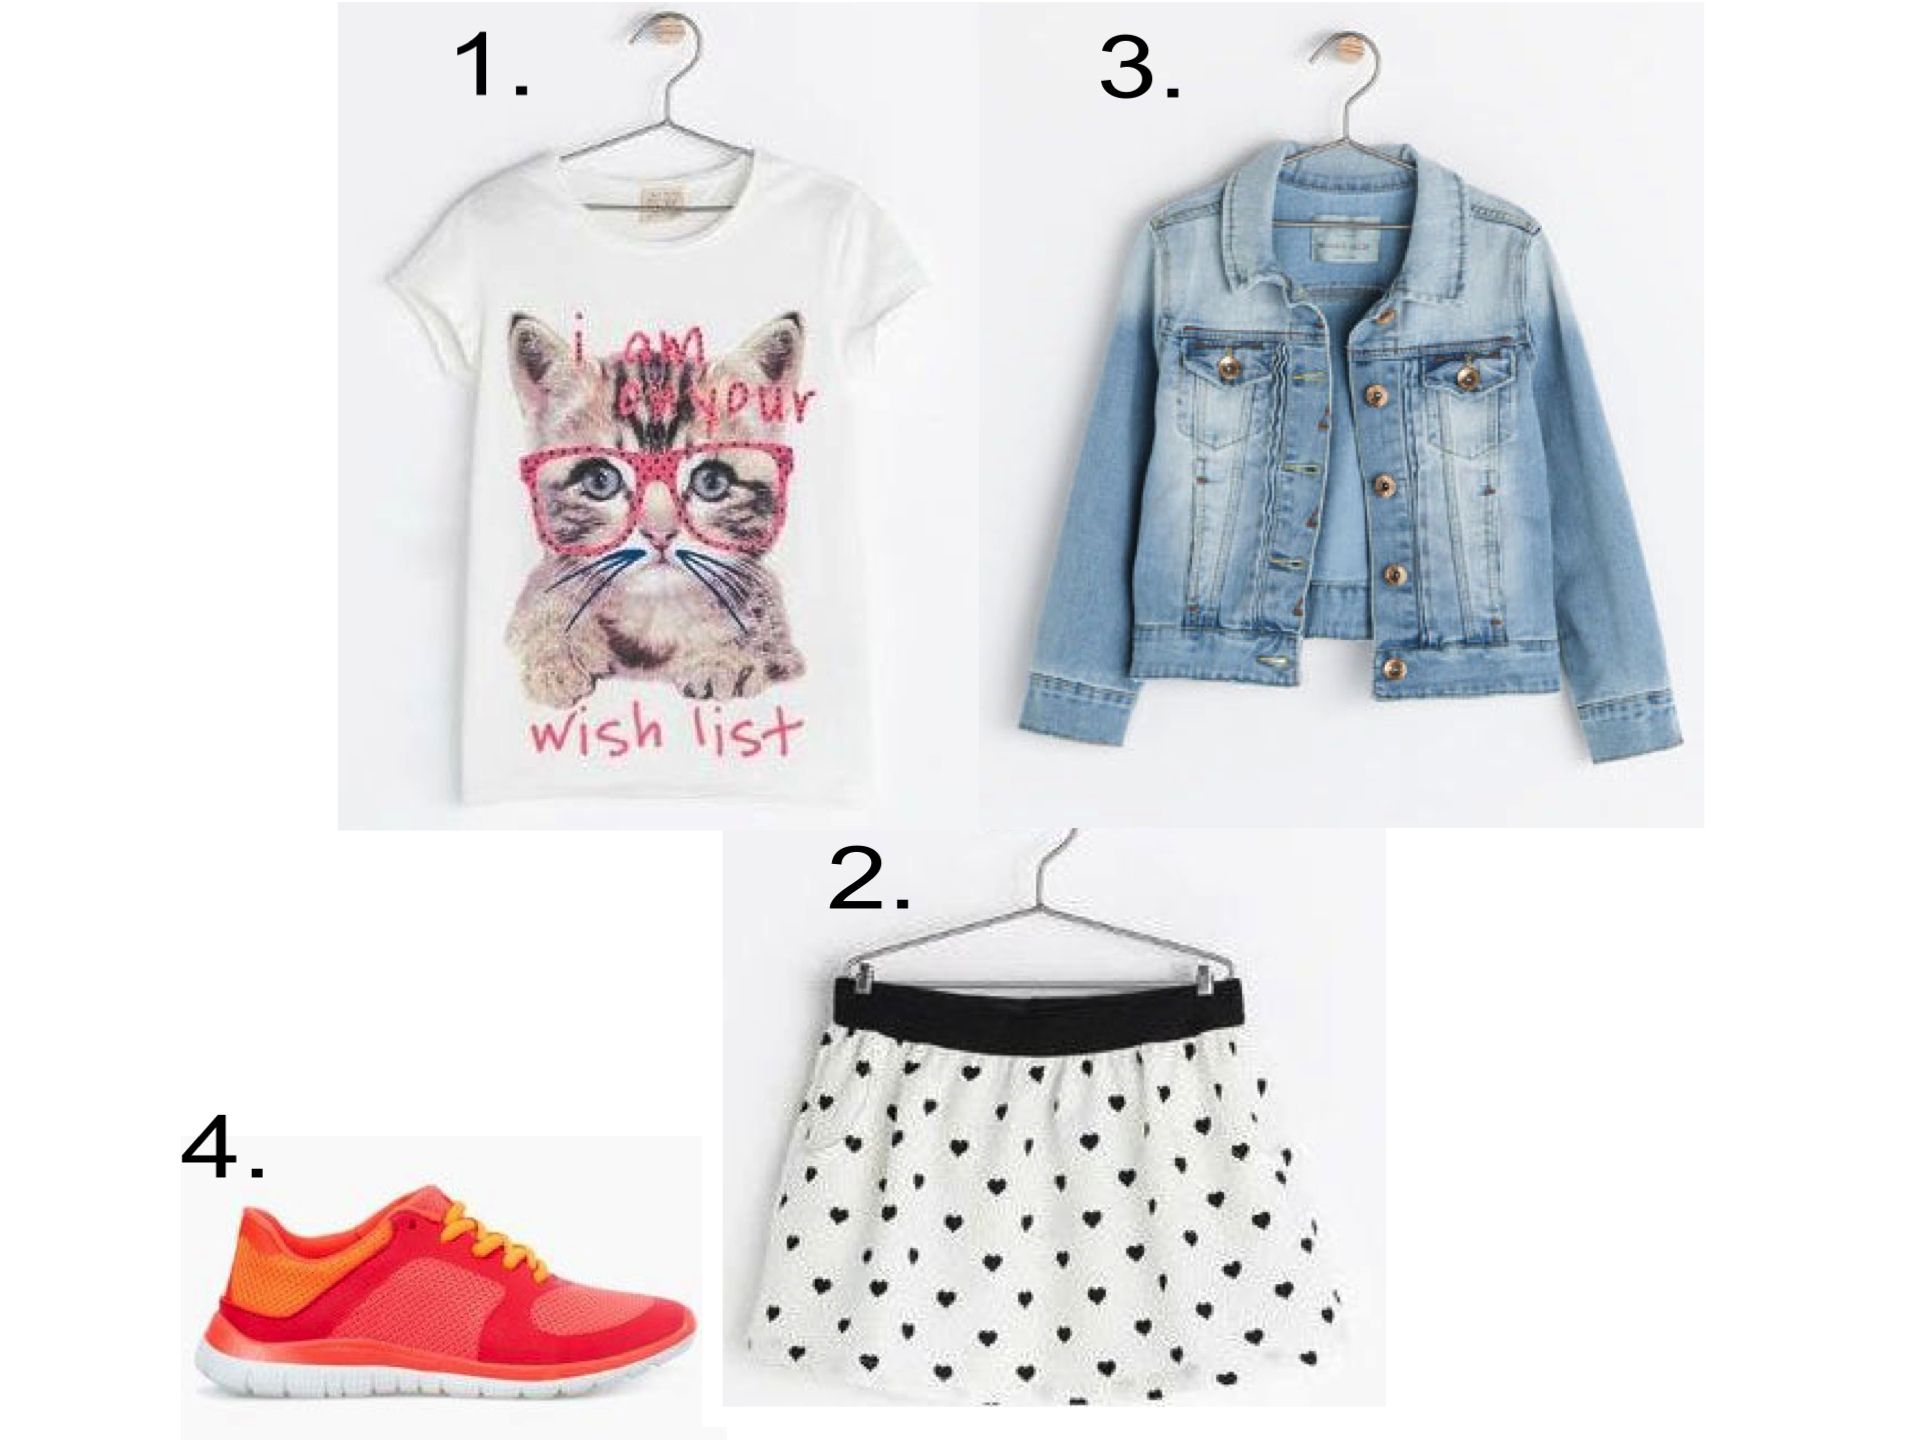 This Allover Heart Print Skirt Reminds me of the one  Taylor Tomasi Hill  wore during NYFW. I love it worn with an Oversize Animal Graphic Tee, Denim Jacket, and Comfy Sneakers.  1.  CAT PRINTED TOP  | 2.  HEART PRINT SKIRT  | 3.  DENIM JACKET  | 4.  PERFORATED SNEAKER